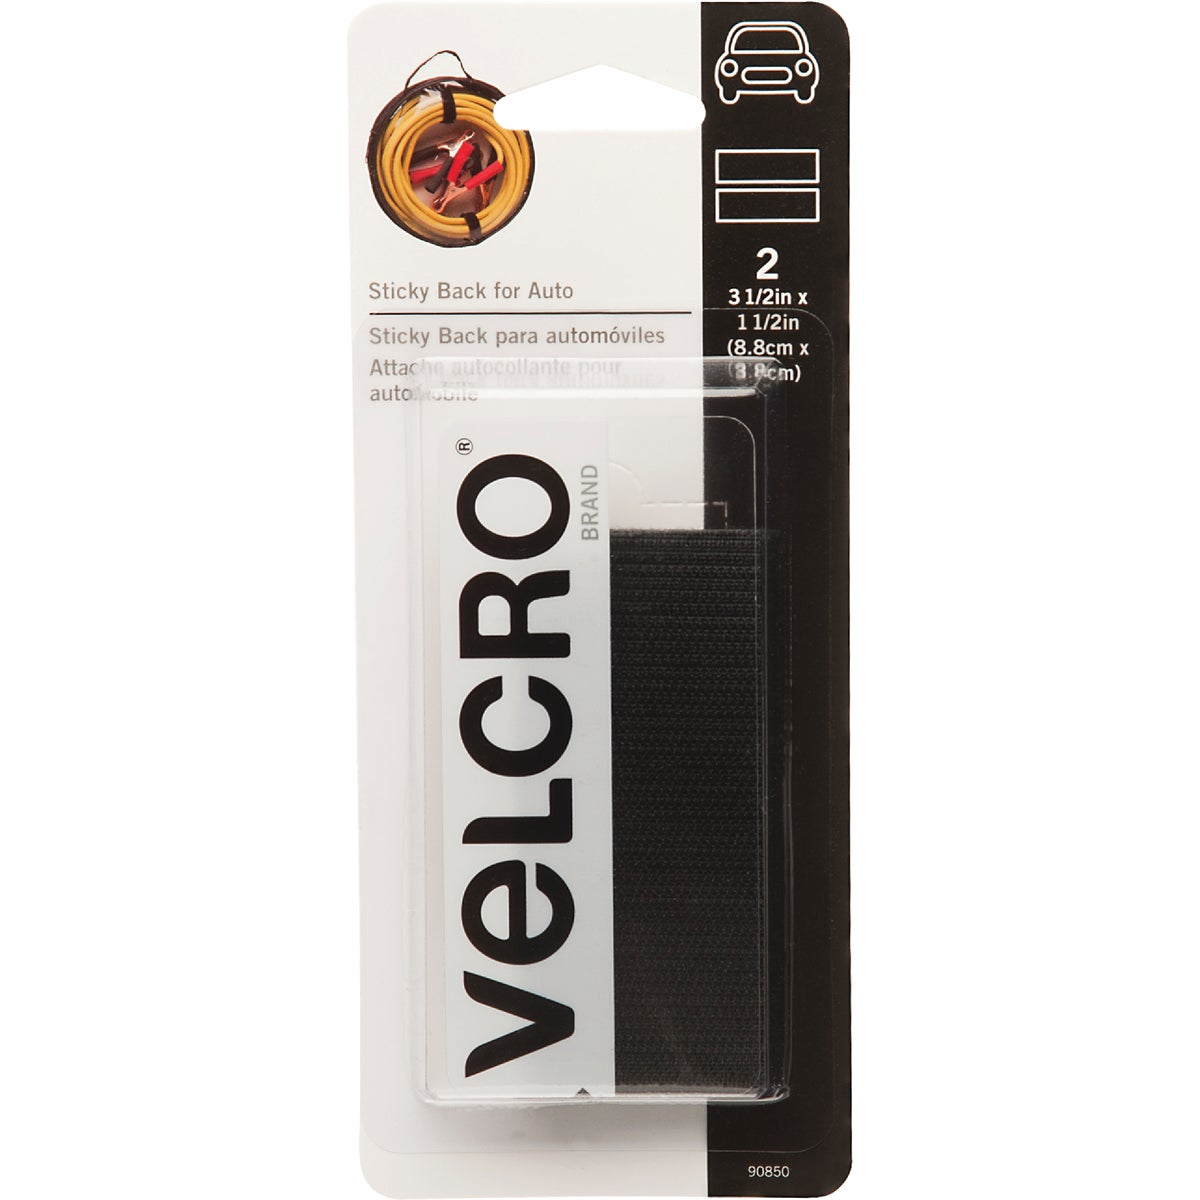 VELCRO Brand 1-1/2 In. x 3-1/2 In. Black Sticky Back For Auto Hook & Loop Strip (2 Ct.)